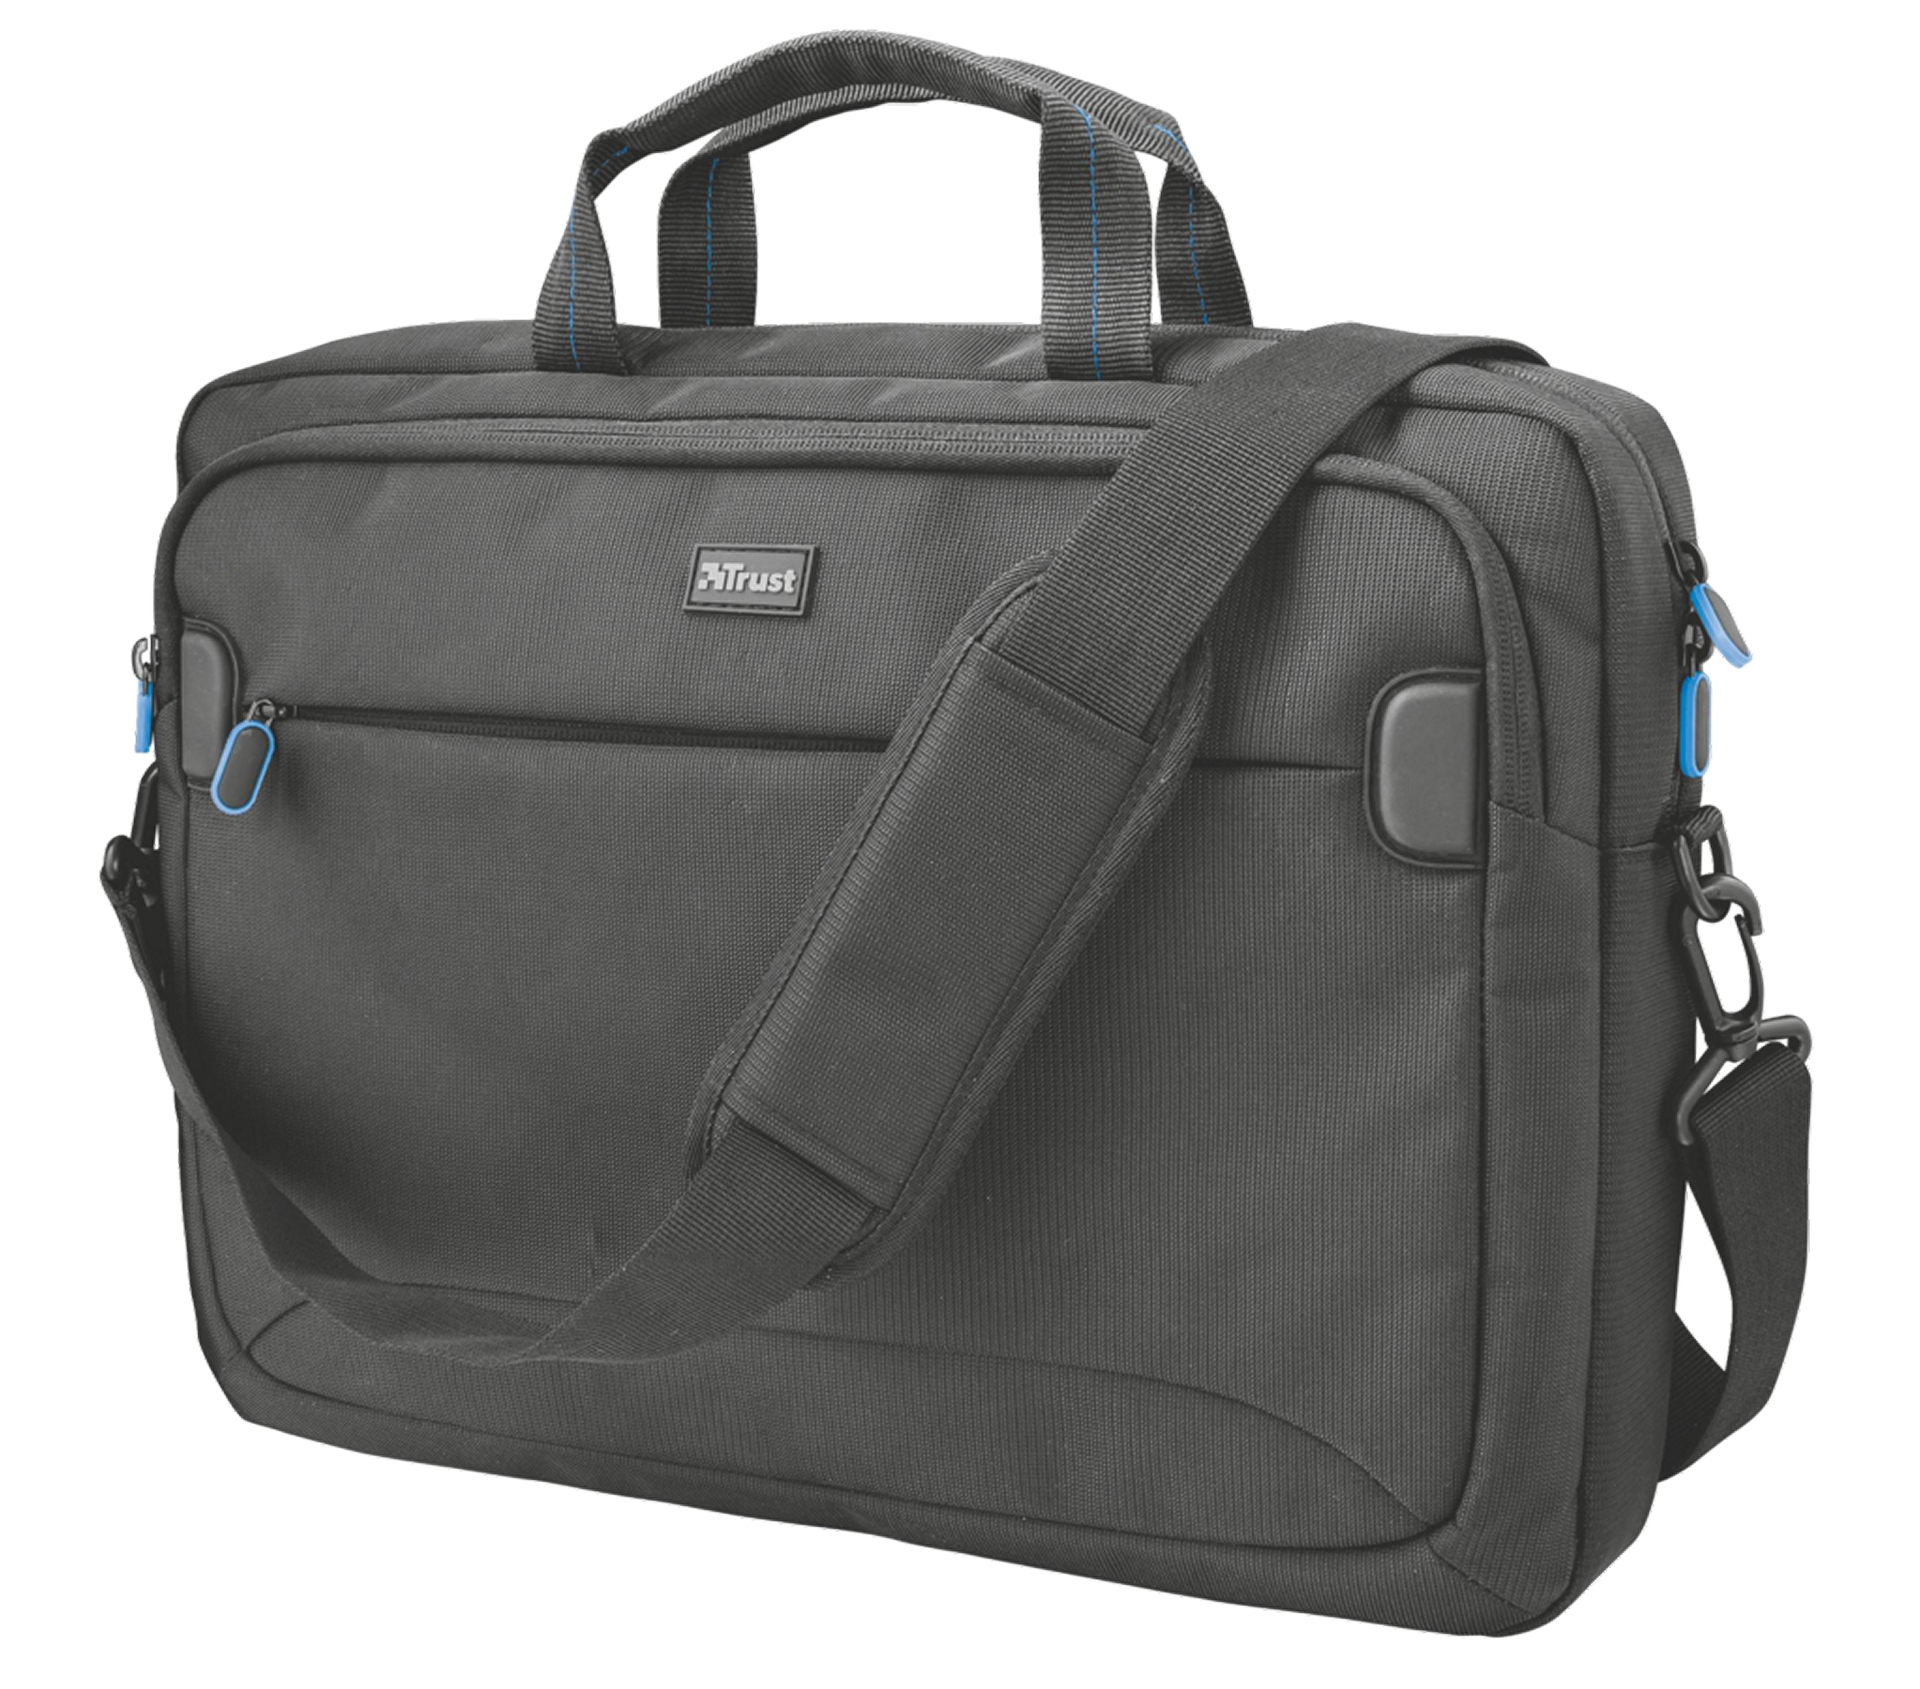 "brašna pro NB TRUST Marra 16"" Carry Bag"